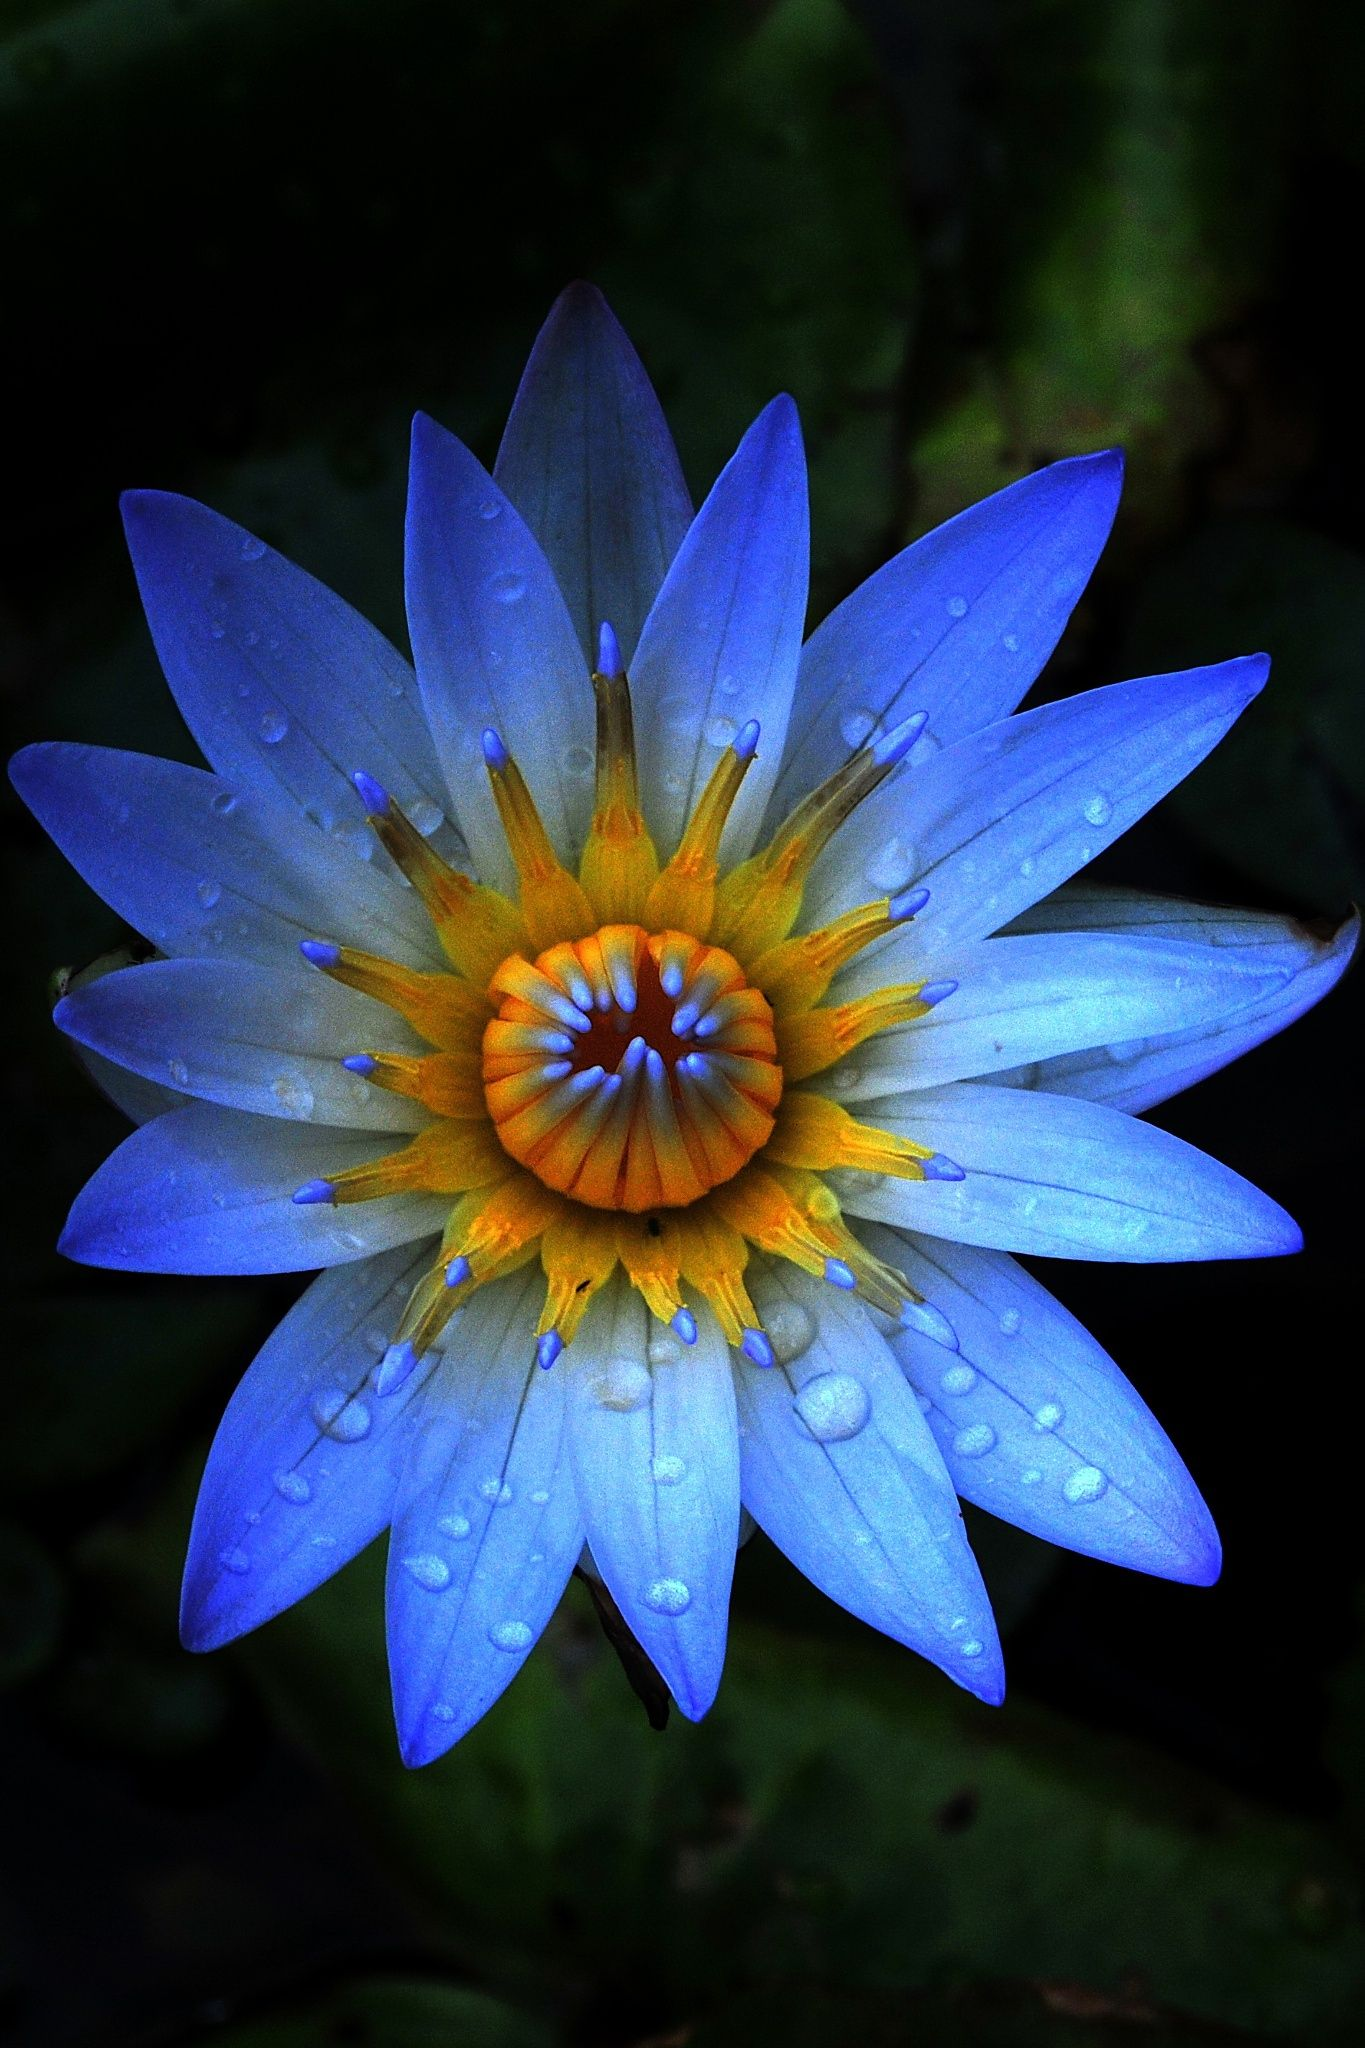 Lily by sandra sigfusson on 500px gardens and flowers pinterest water lily kauai hawaii by sandra sigfusson what a pretty blue flower the contrast is amazing izmirmasajfo Images